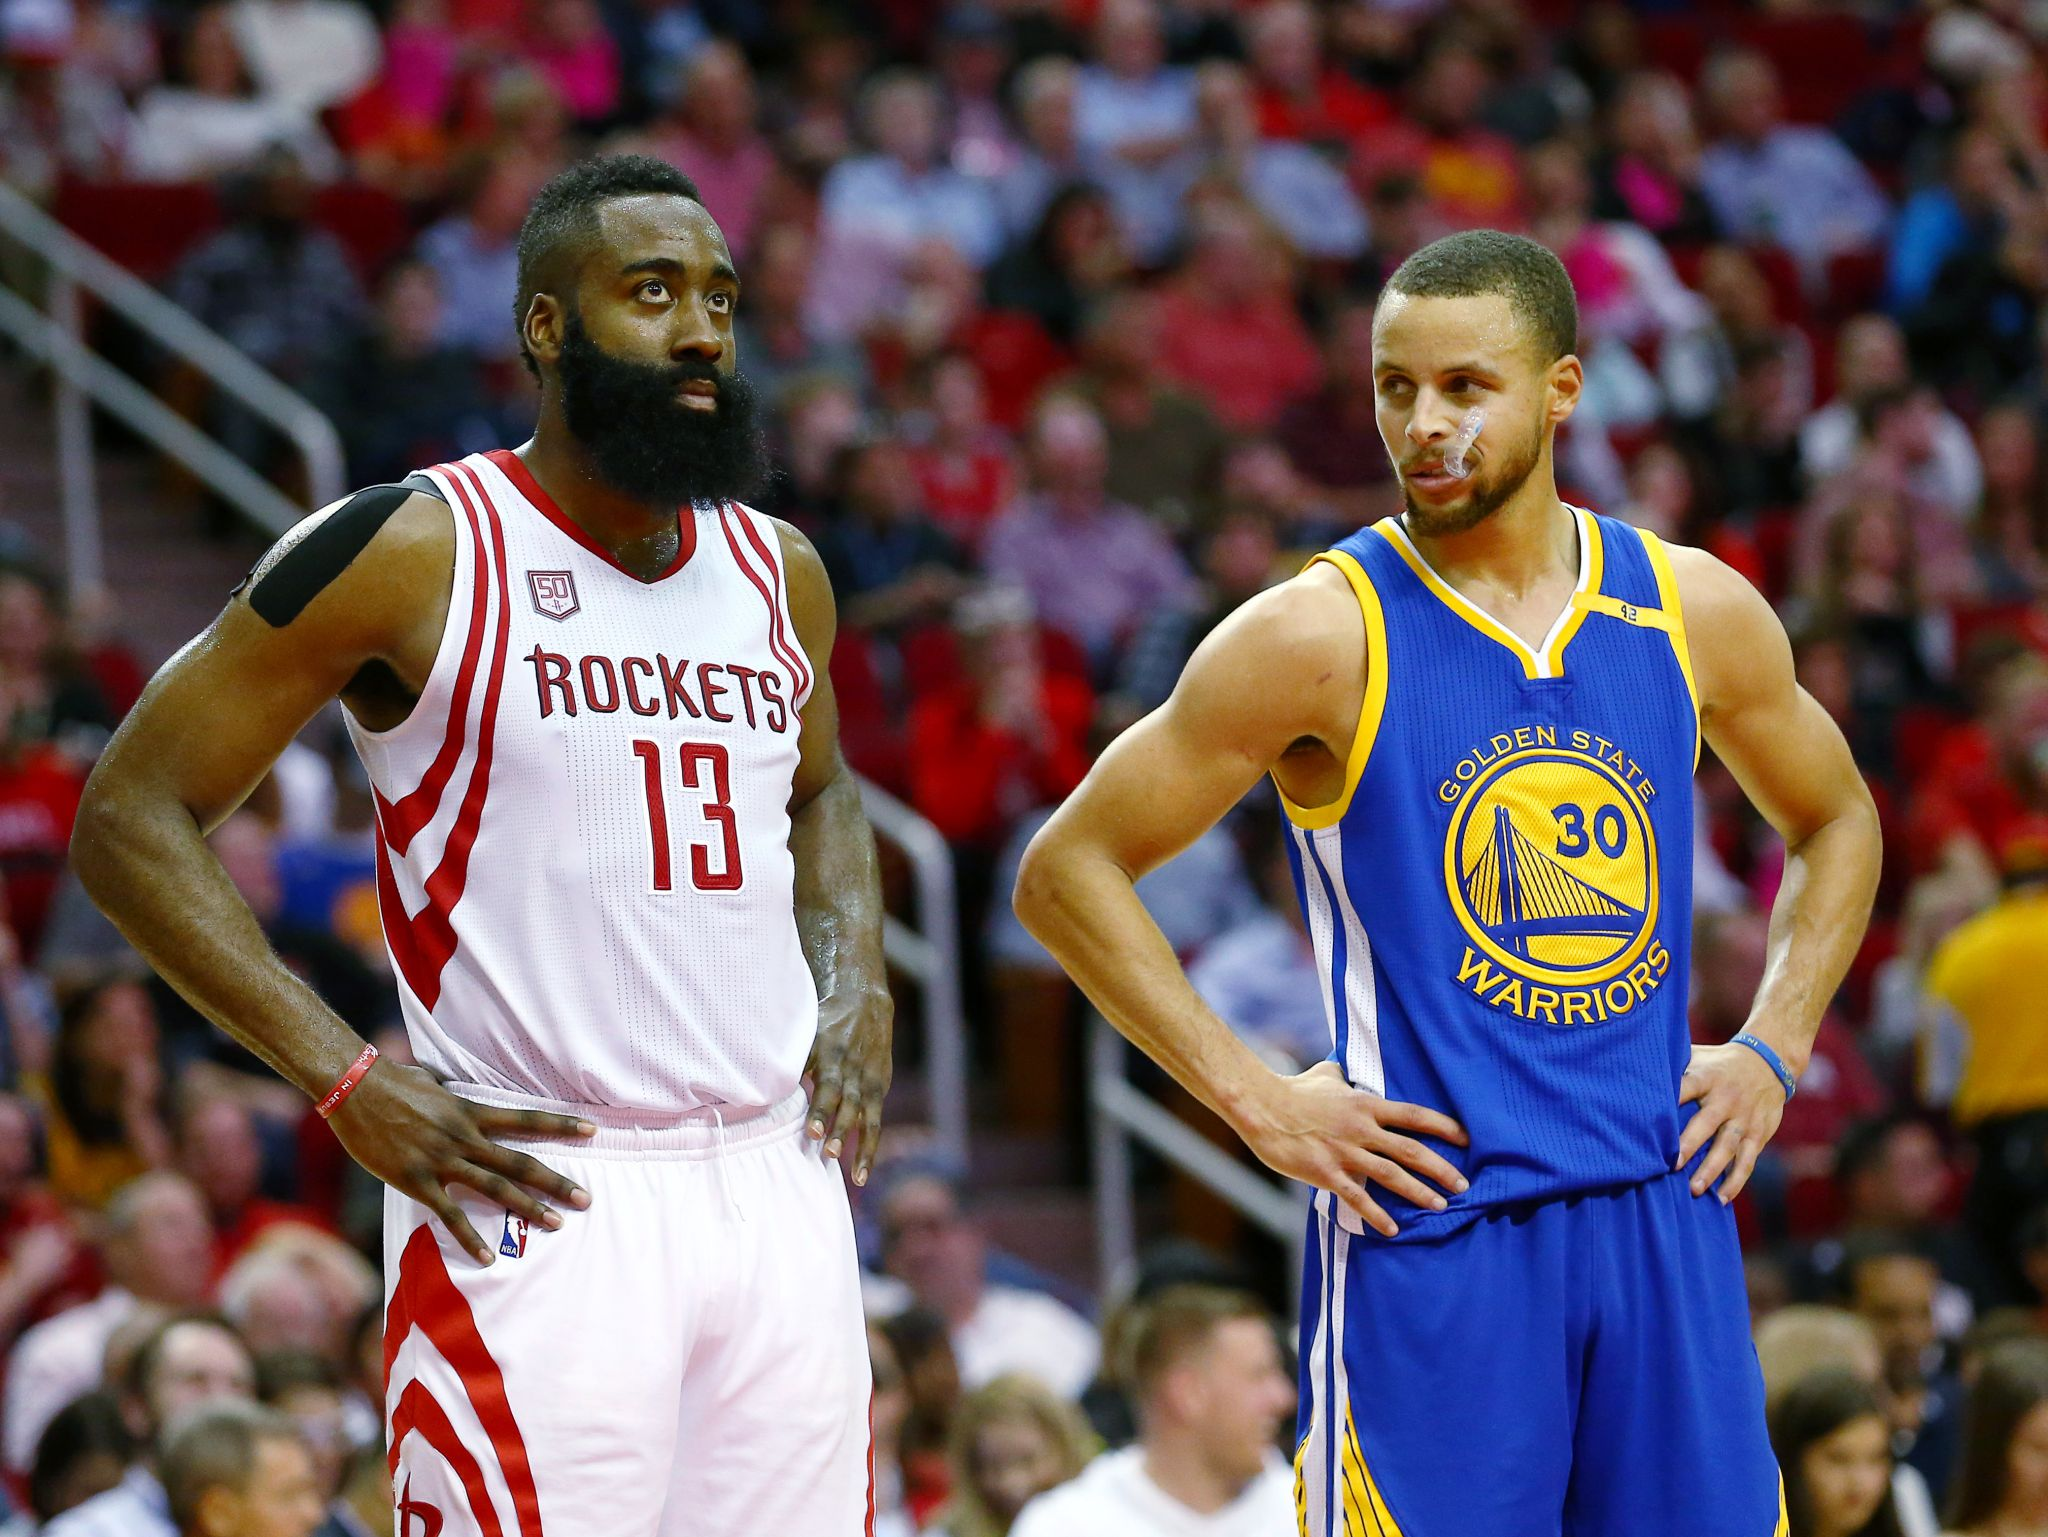 Warriors overpower Rockets with 3-point ... defense